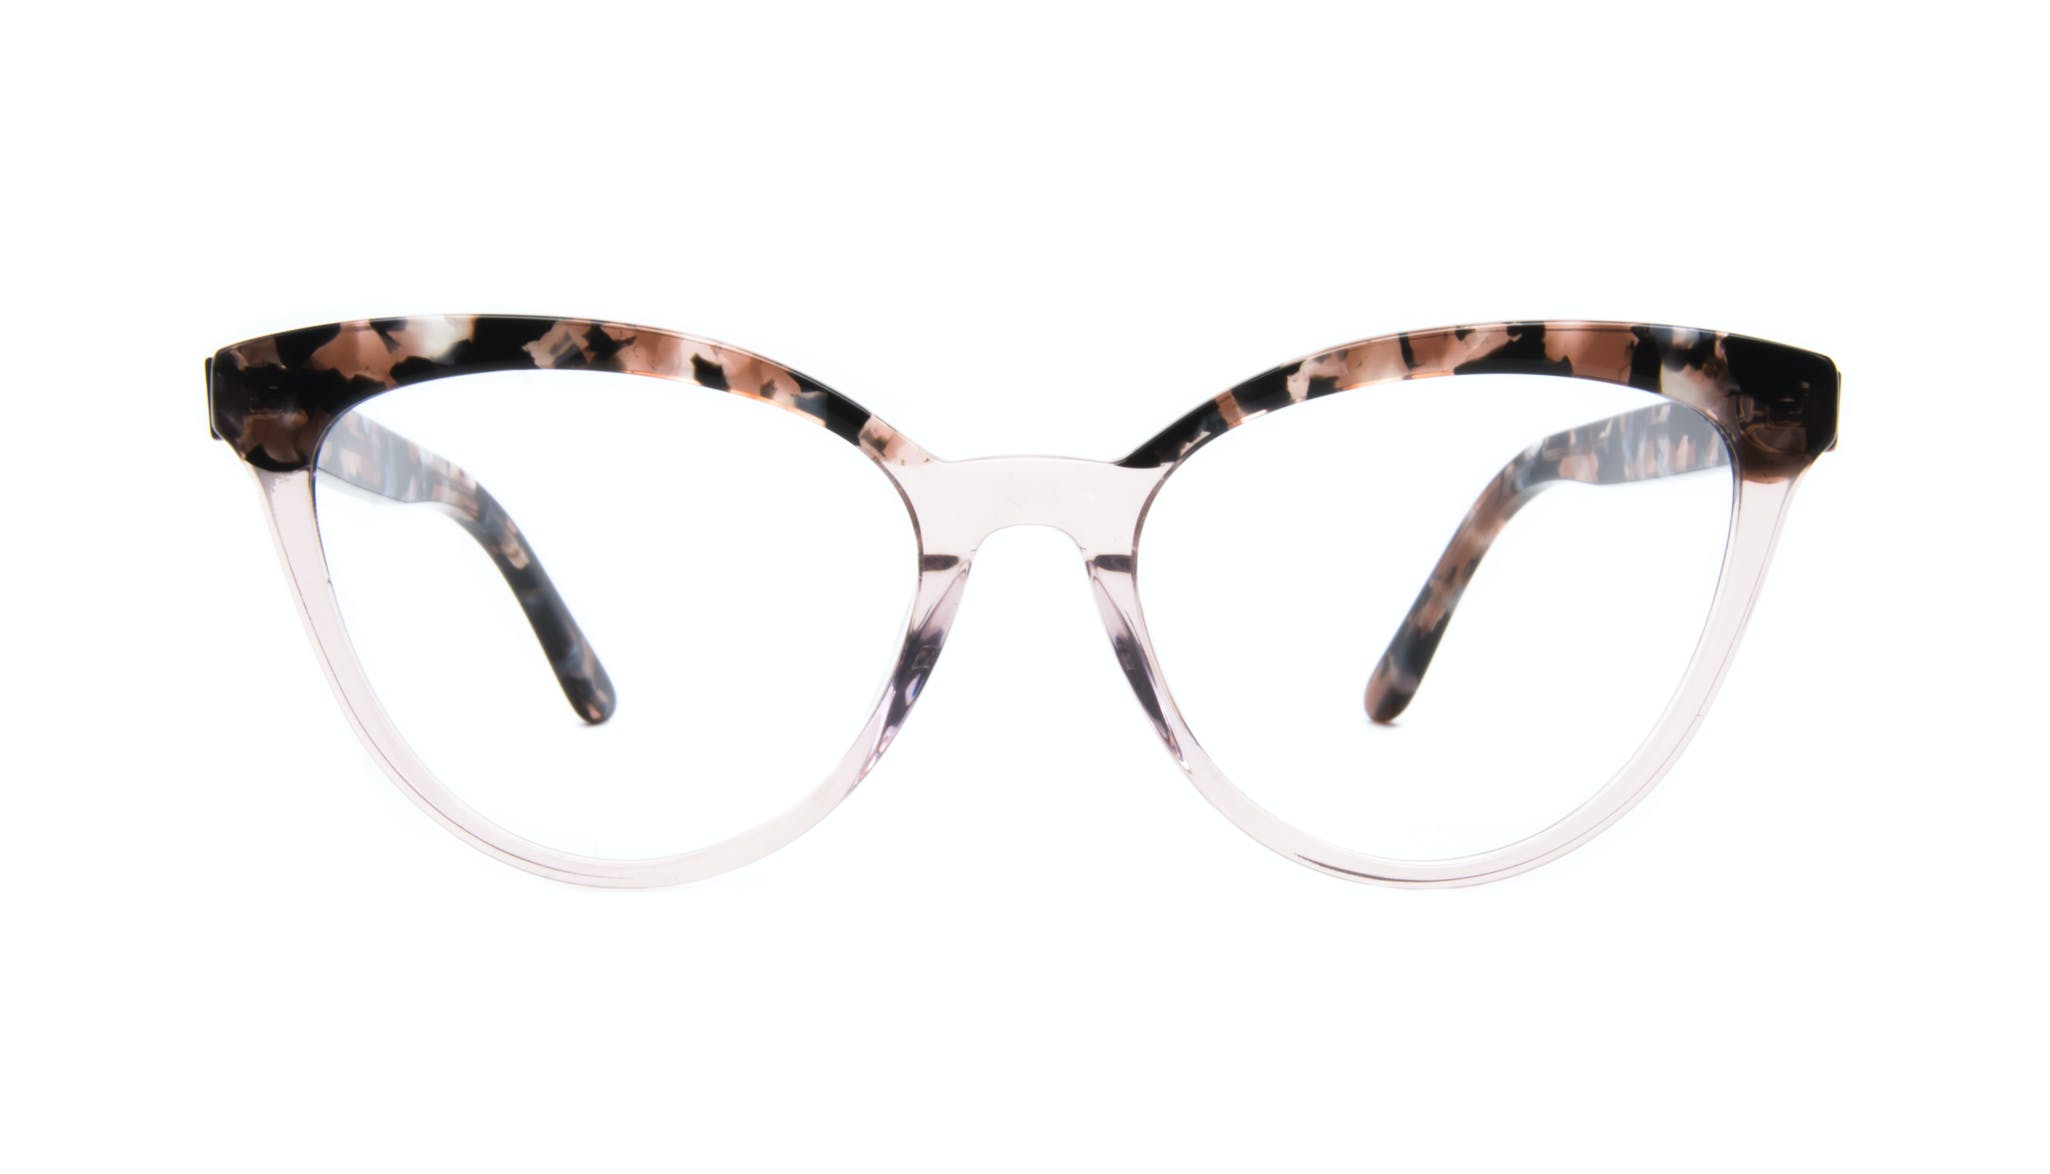 Affordable Fashion Glasses Cat Eye Daring Cateye Eyeglasses Women Reverie Rose Tort